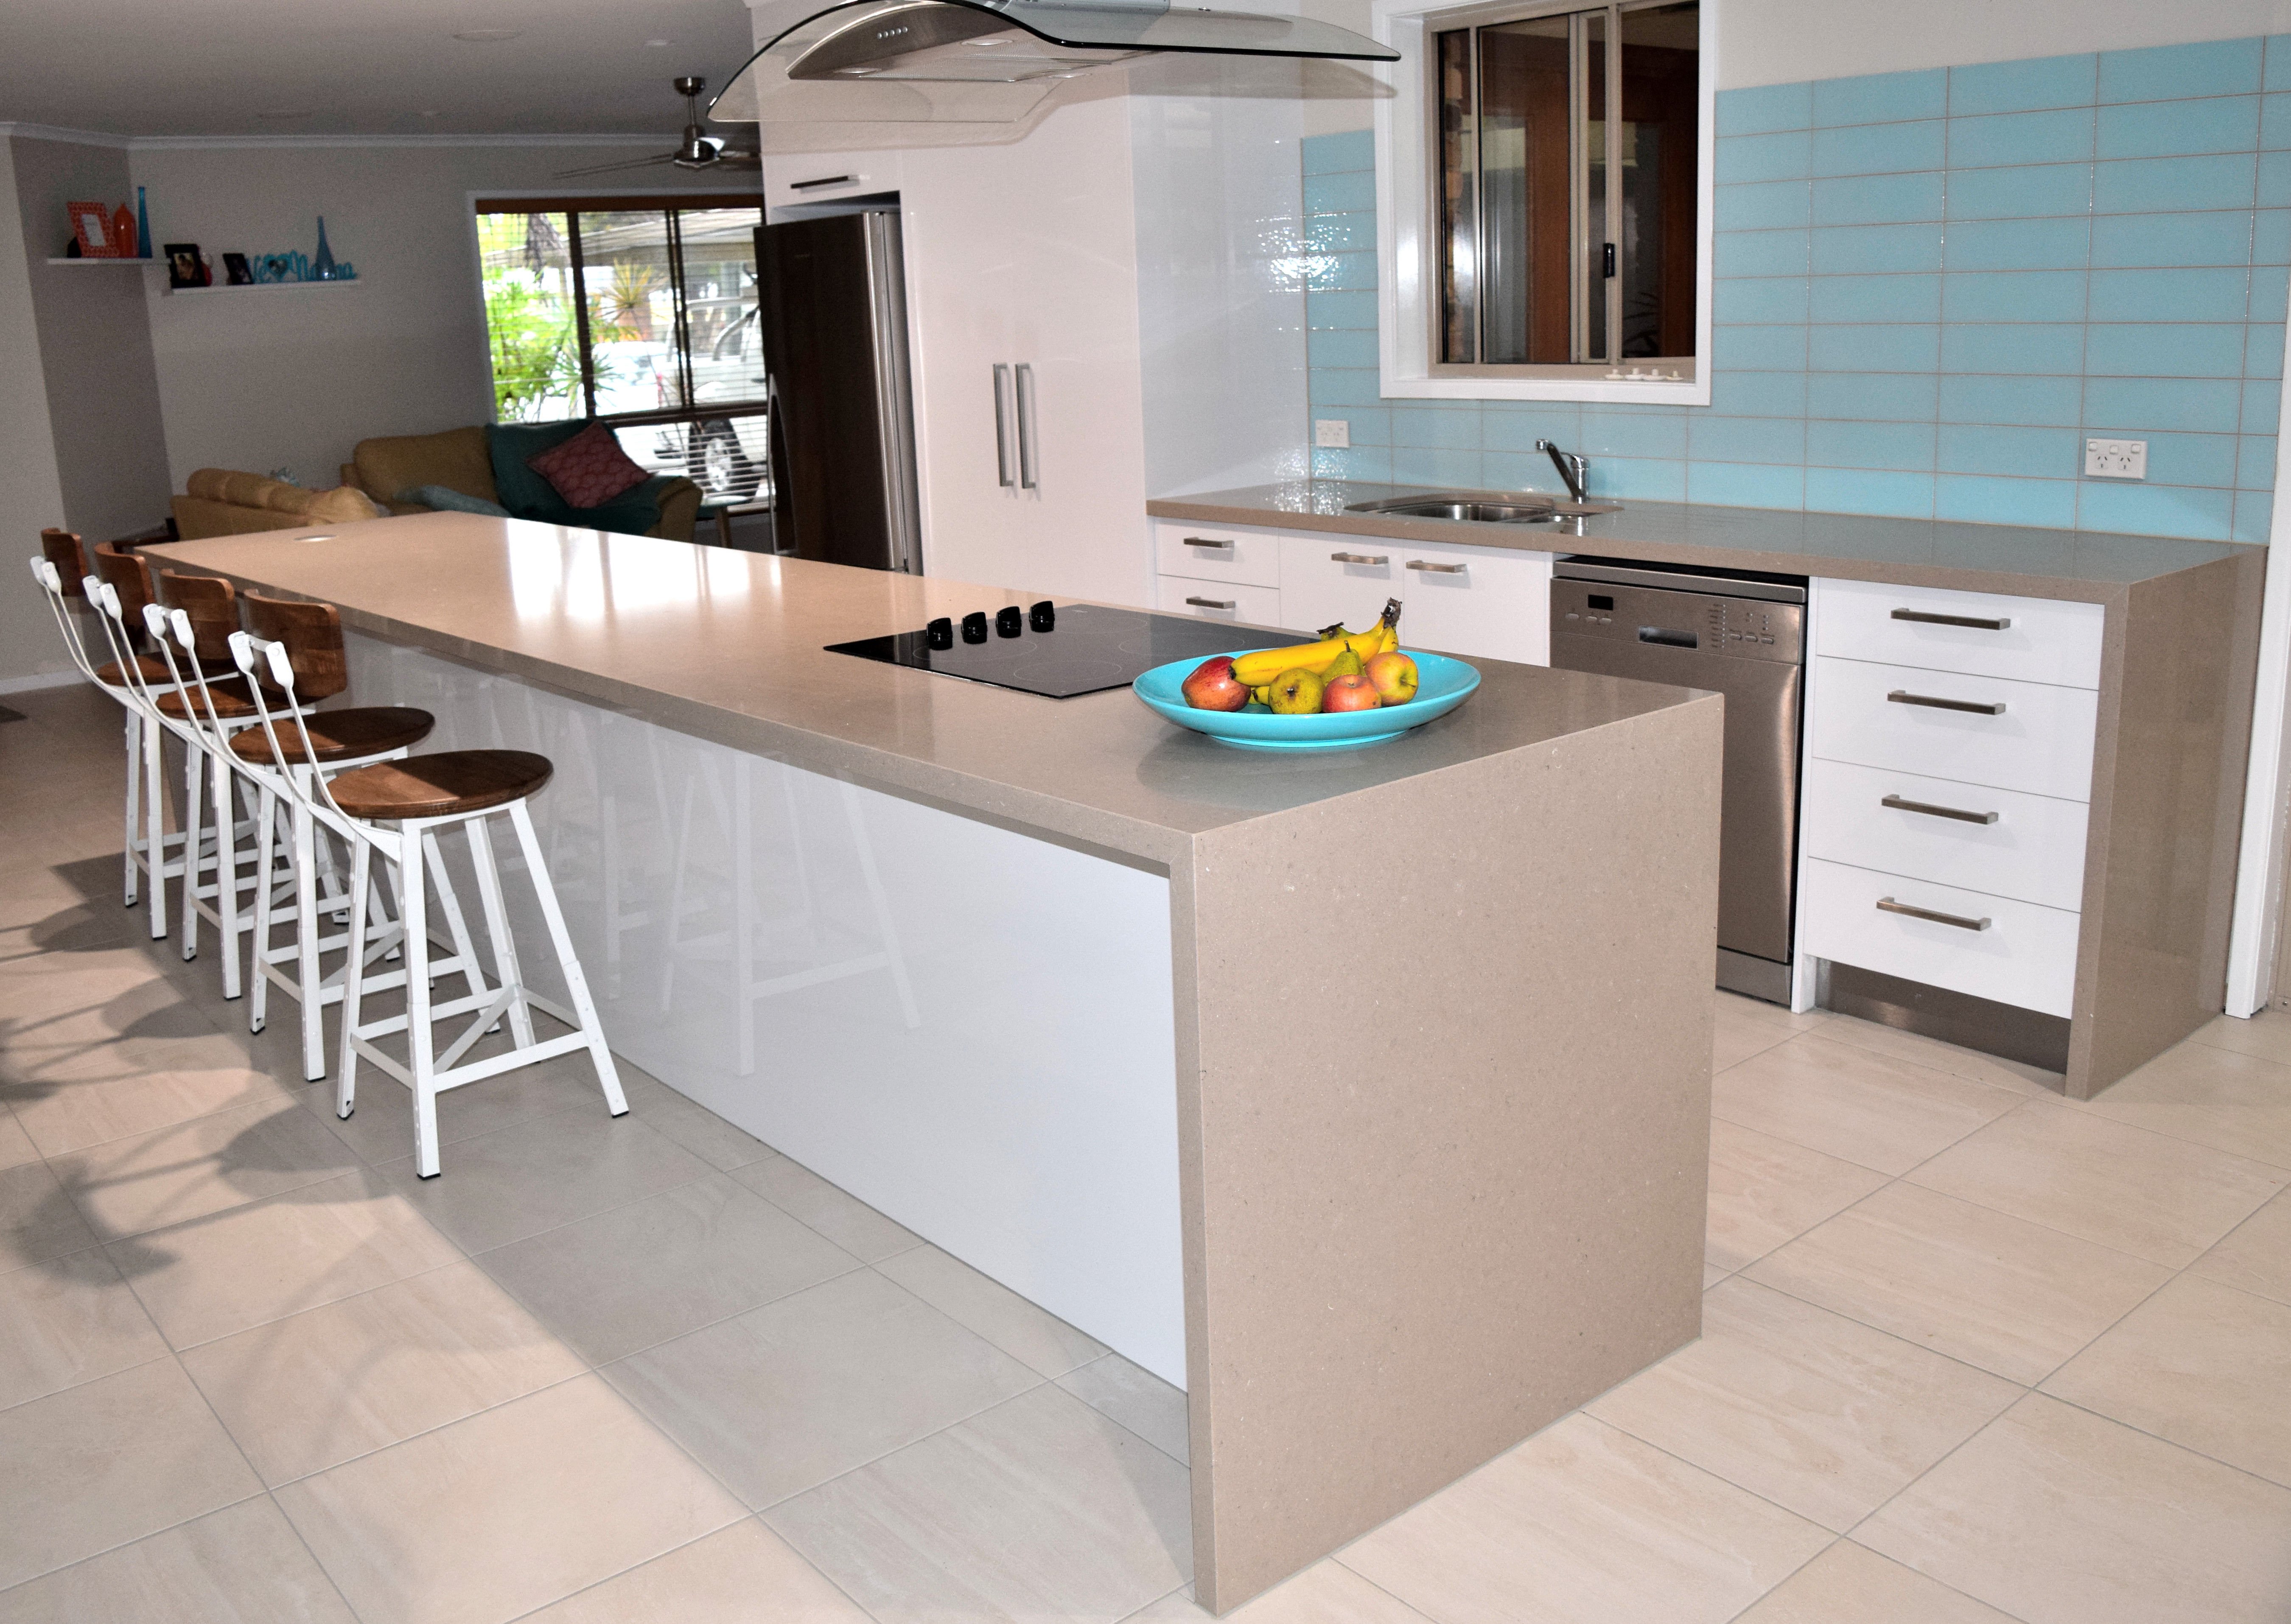 Instyle Custom Kitchens Quality Kitchens Vanities And Cabinetry